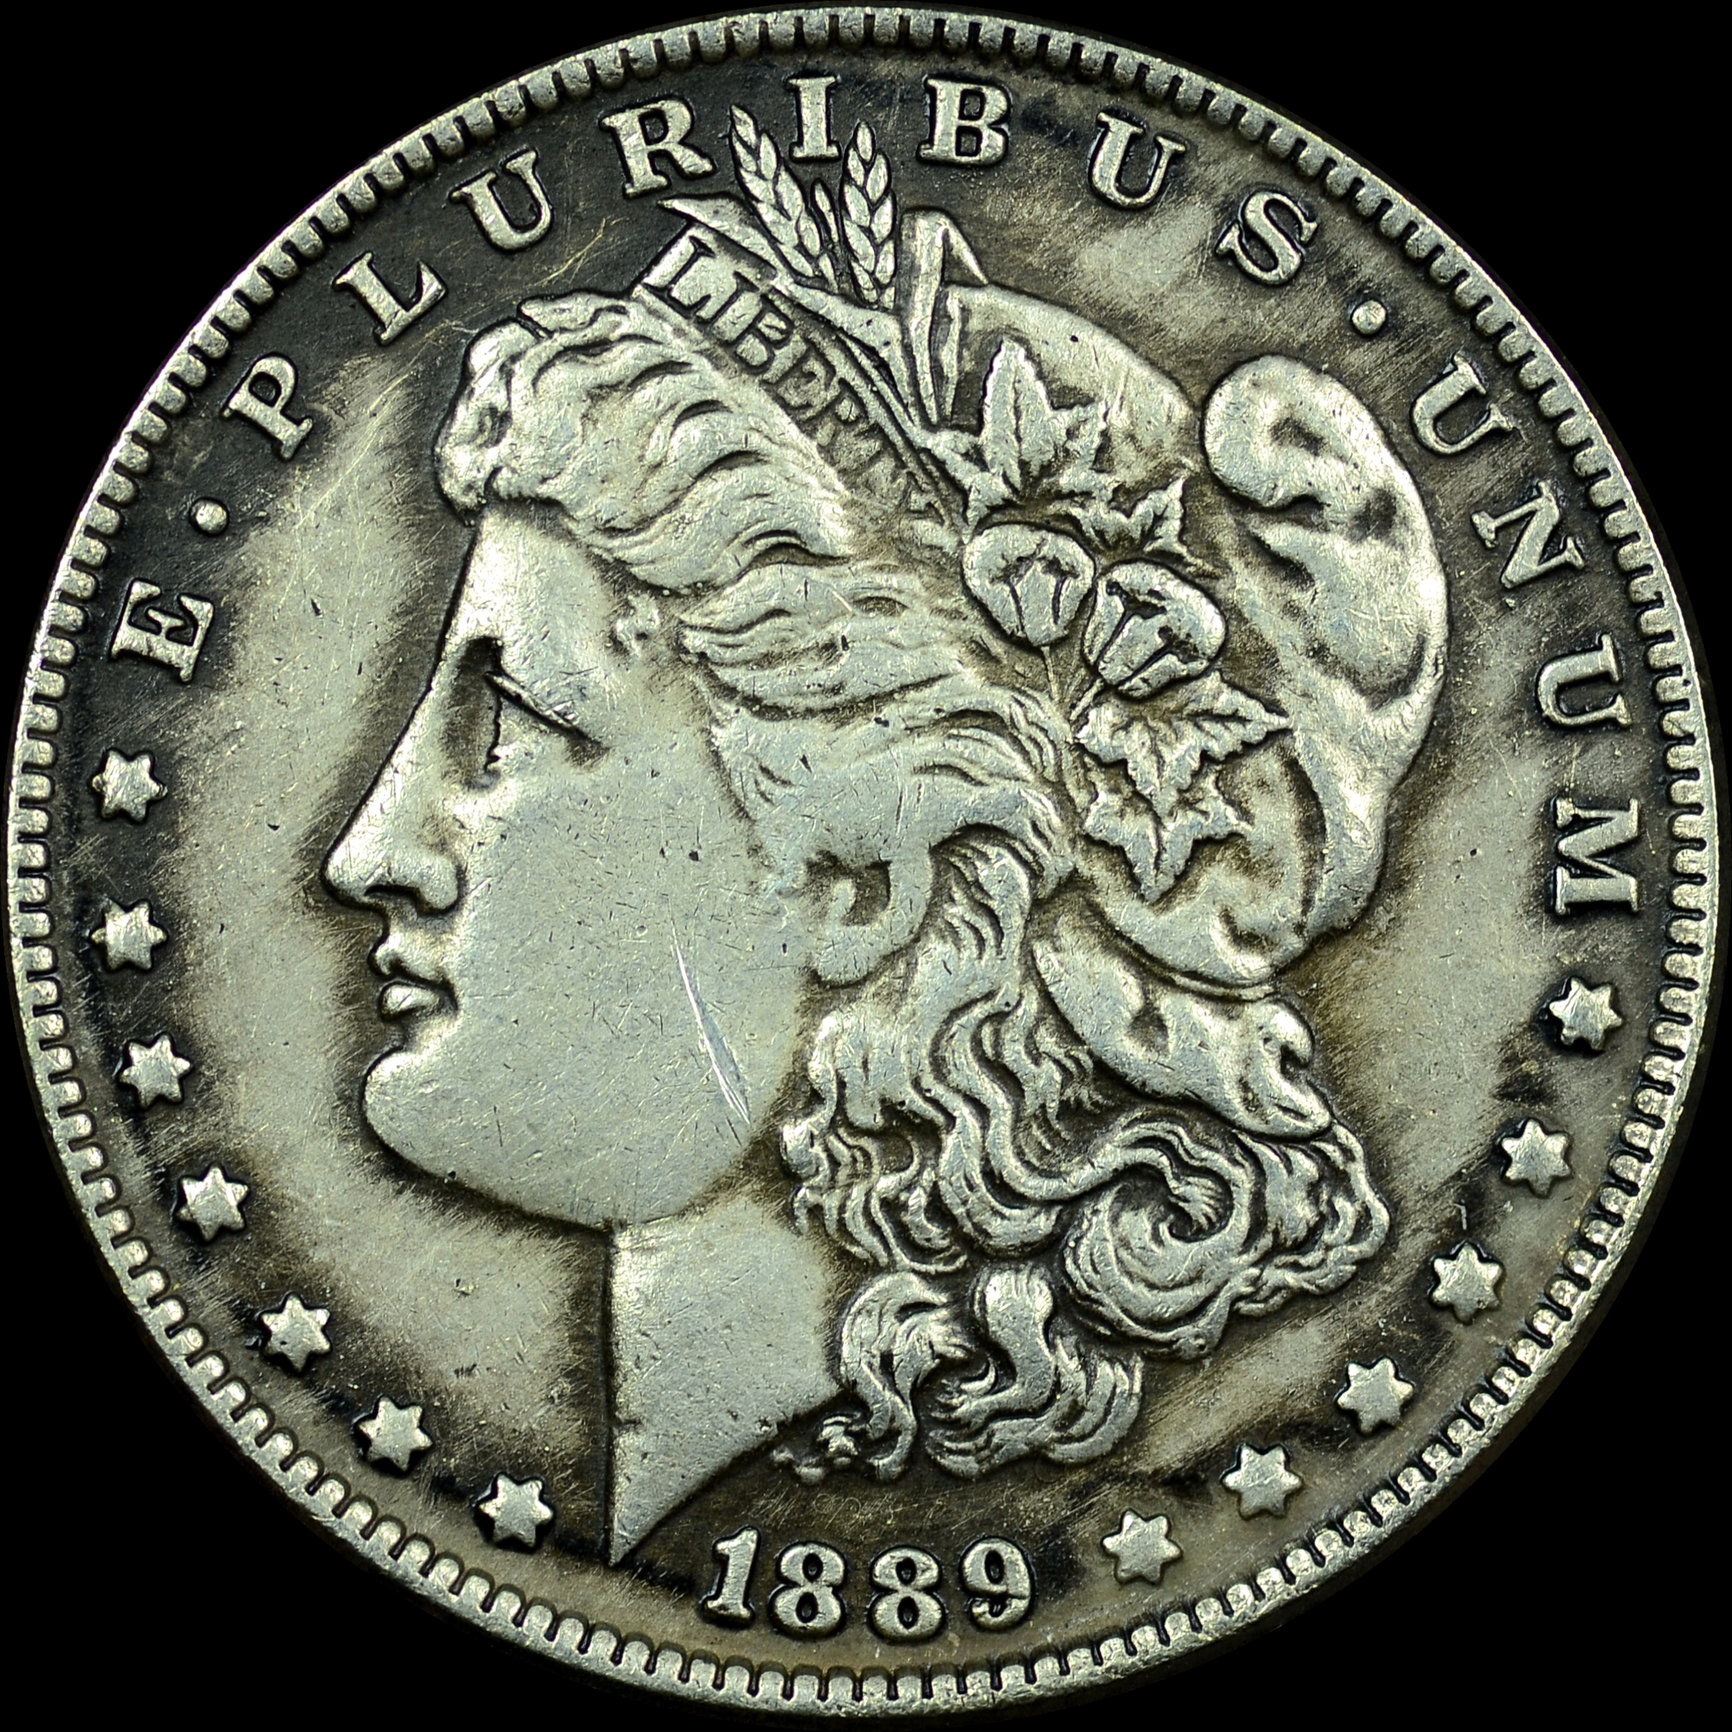 Fairly deceptive CC Morgan counterfeits arrived today — Collectors